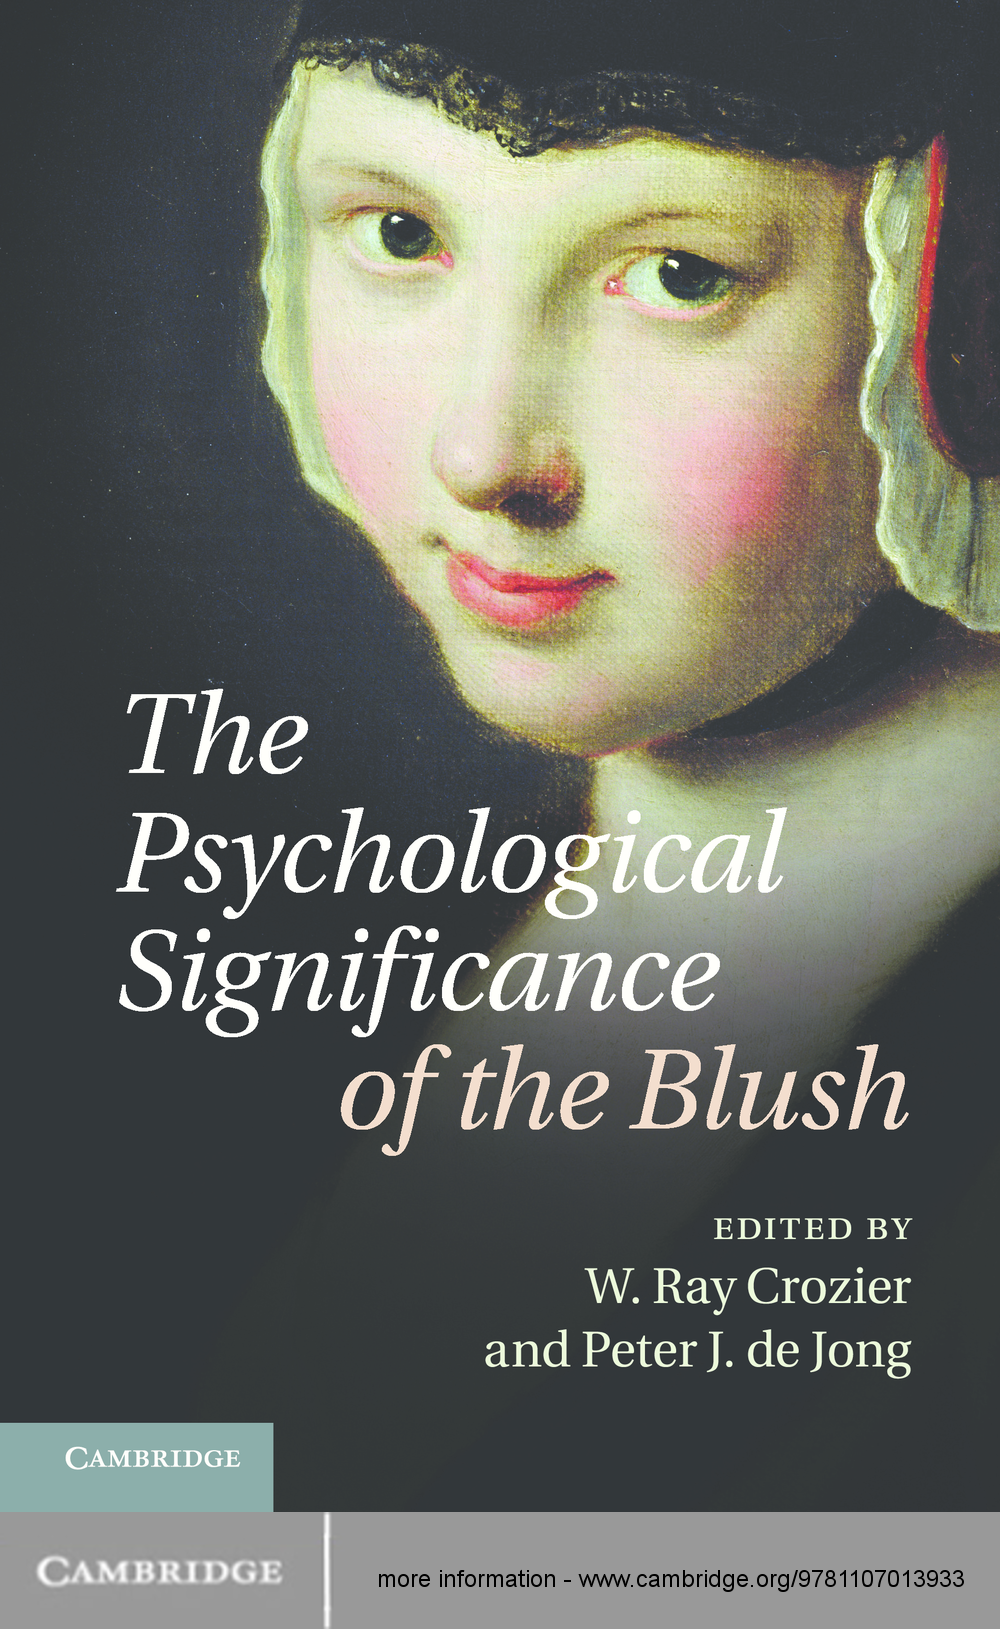 The Psychological Significance of the Blush